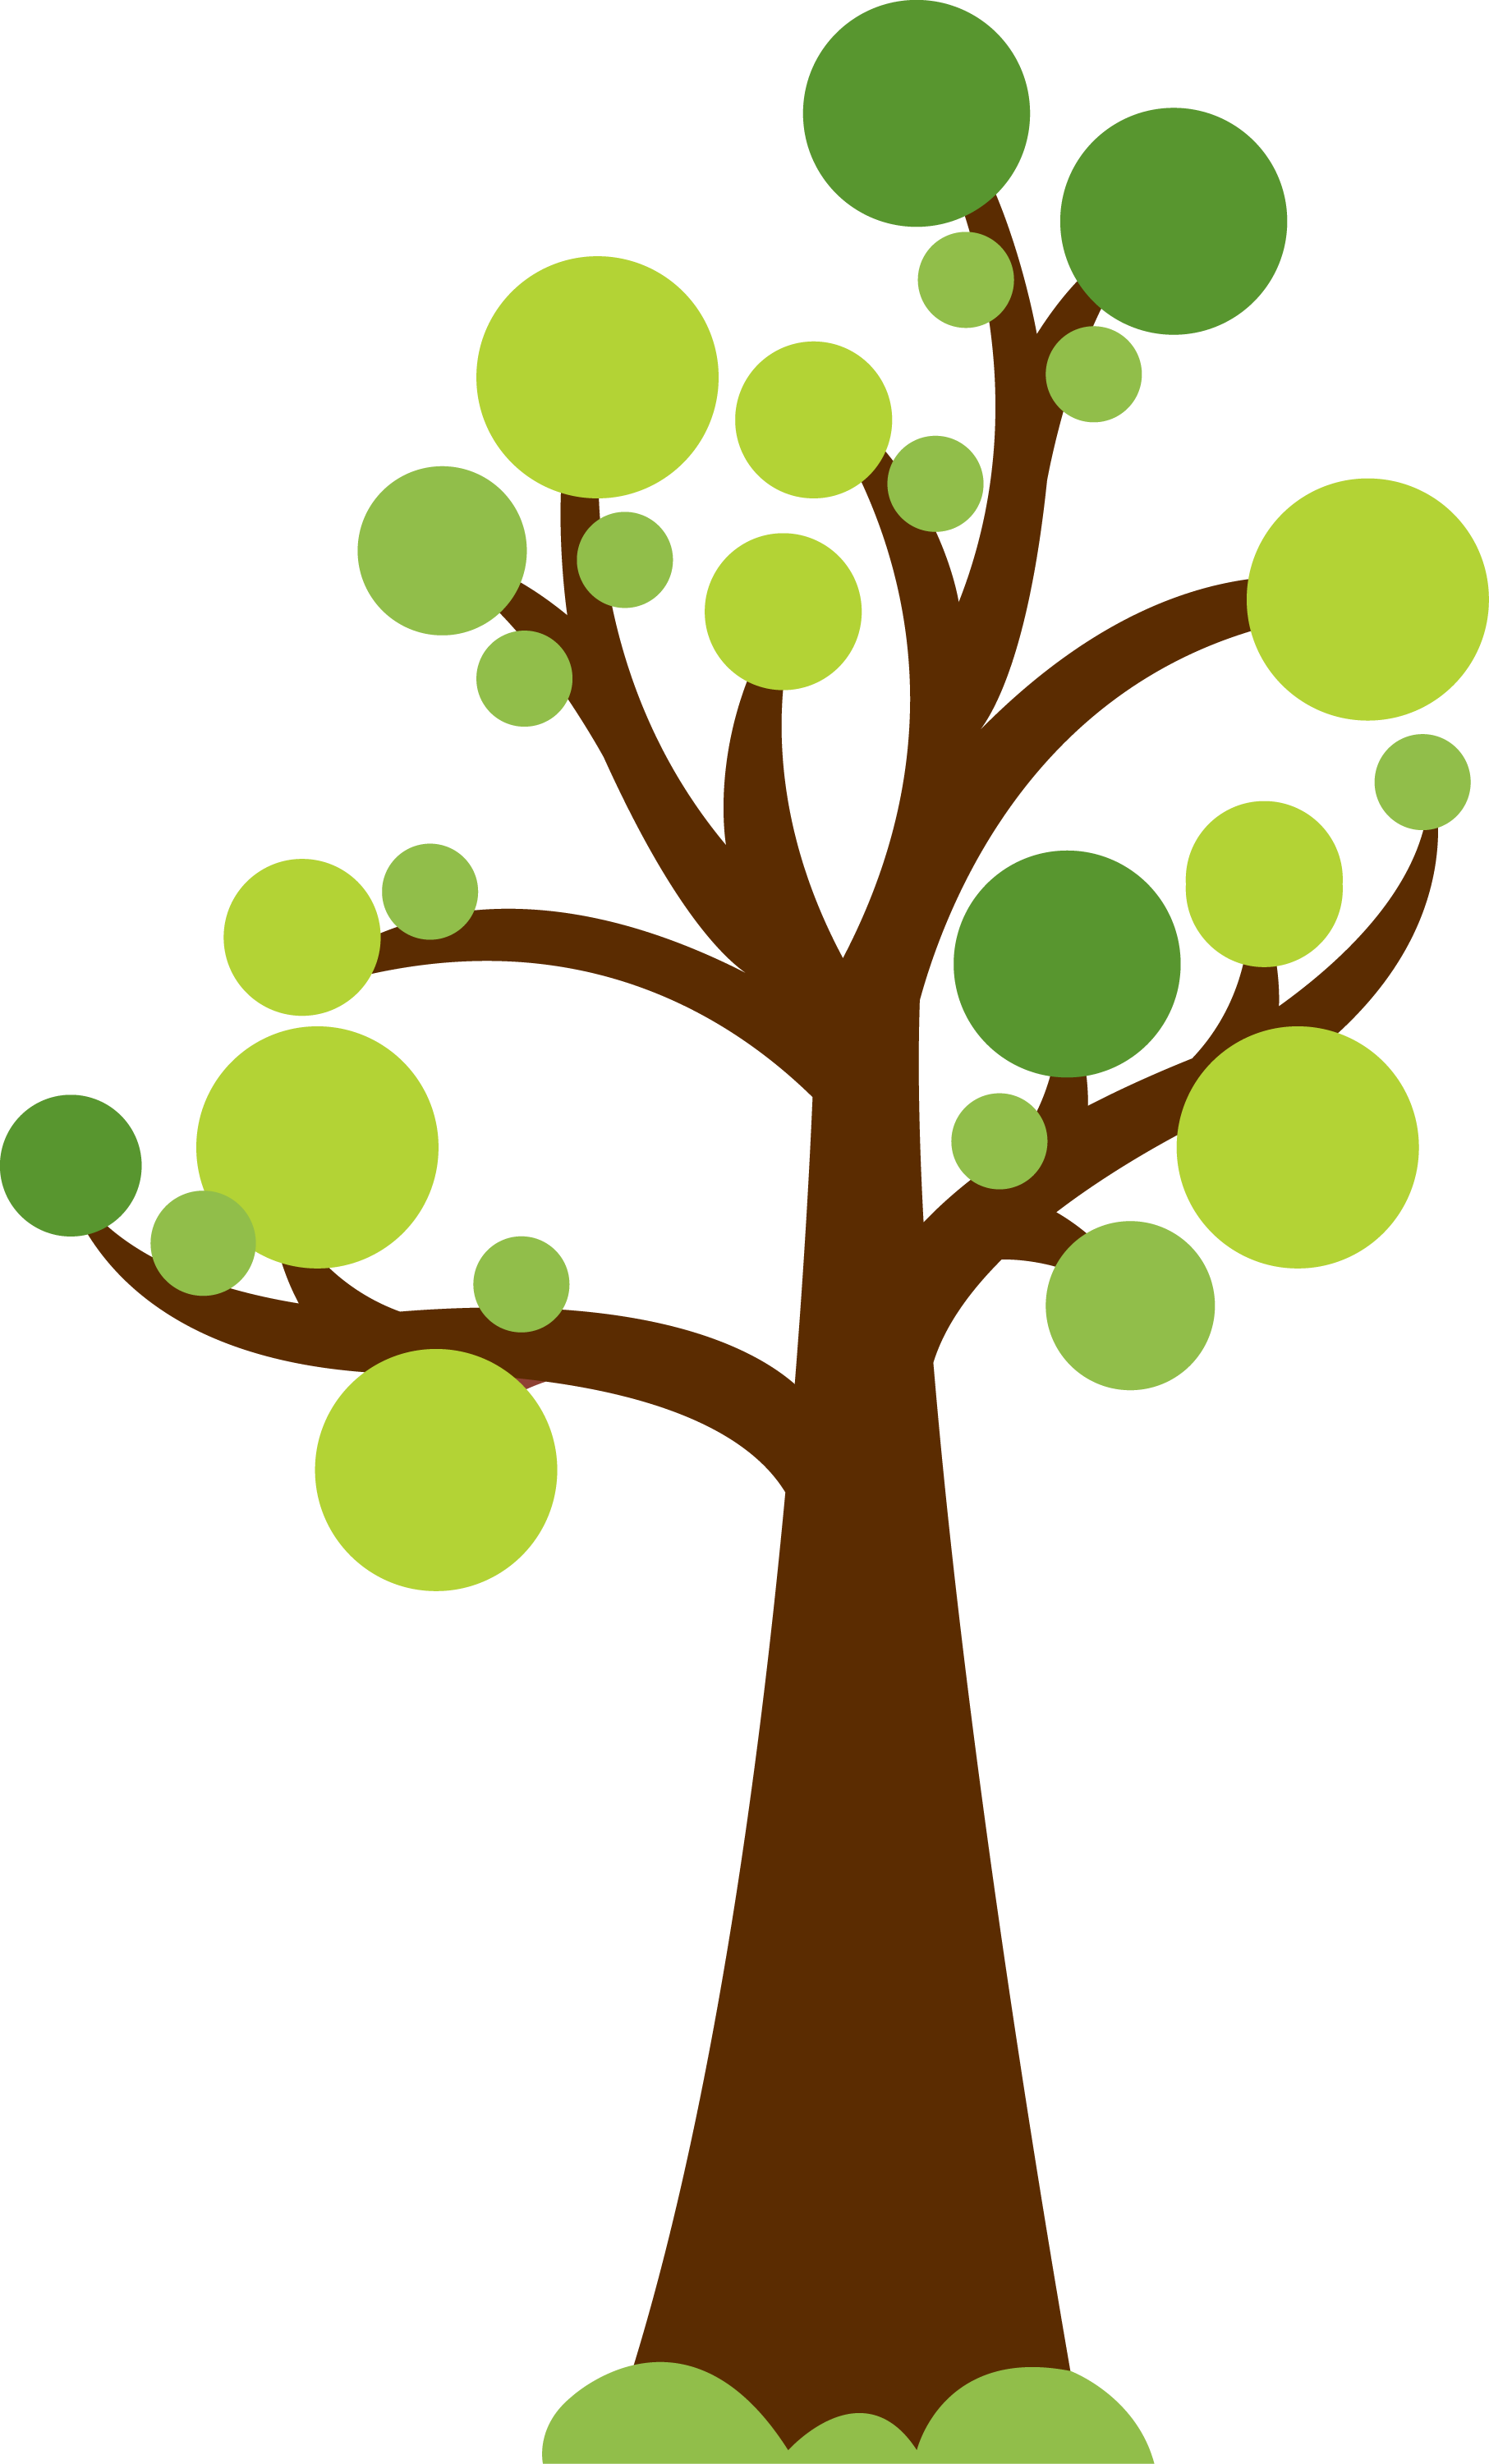 Tree with circles for leaves. Cute image for summer or garden theme. Photo  by - Minus